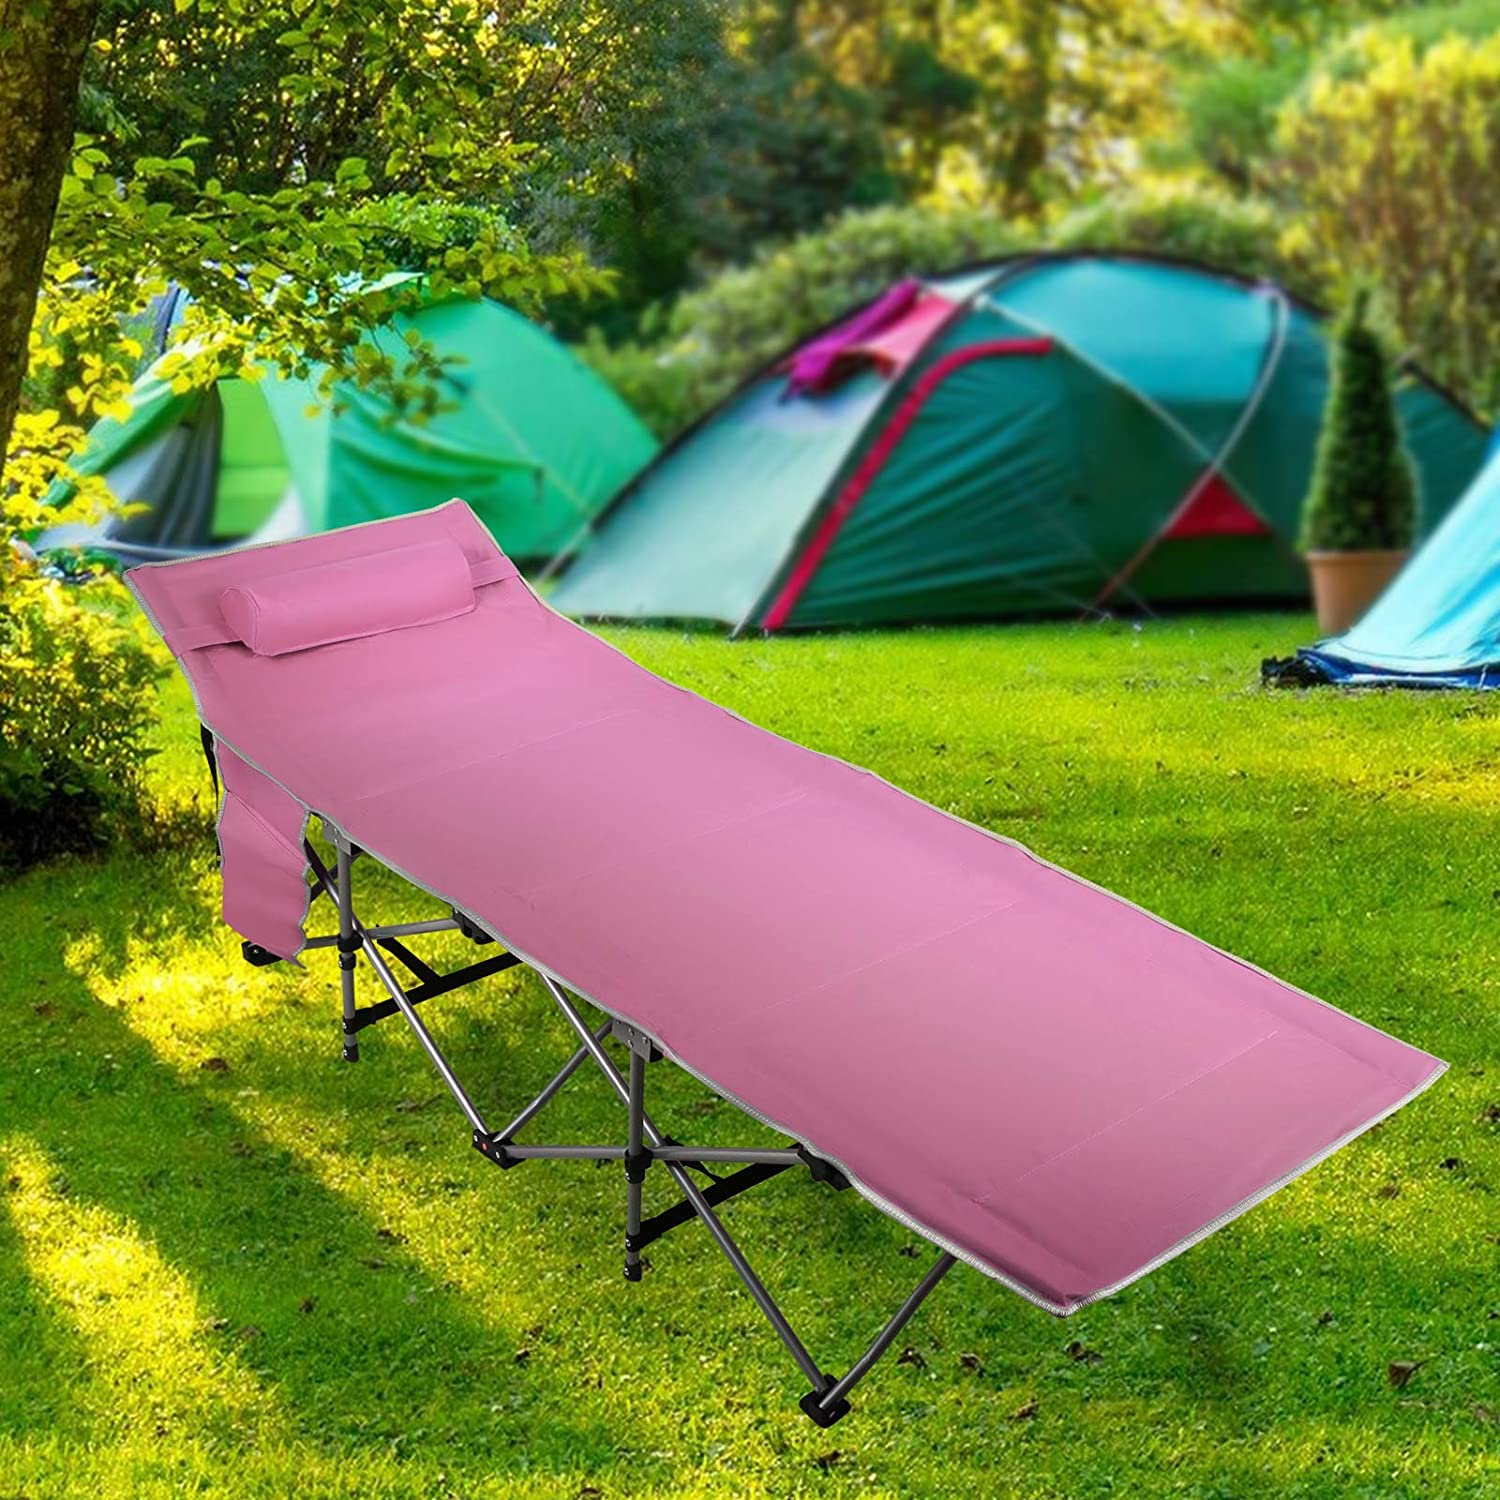 Pale Violet Red Folding Sleeping Camping Cot 450 lbs Max, Bed w/Pillow and Side Pocket Portable Design Comfort Small Collapsing Sleeping Bed- Outdoor Traveling Picnic for Adults